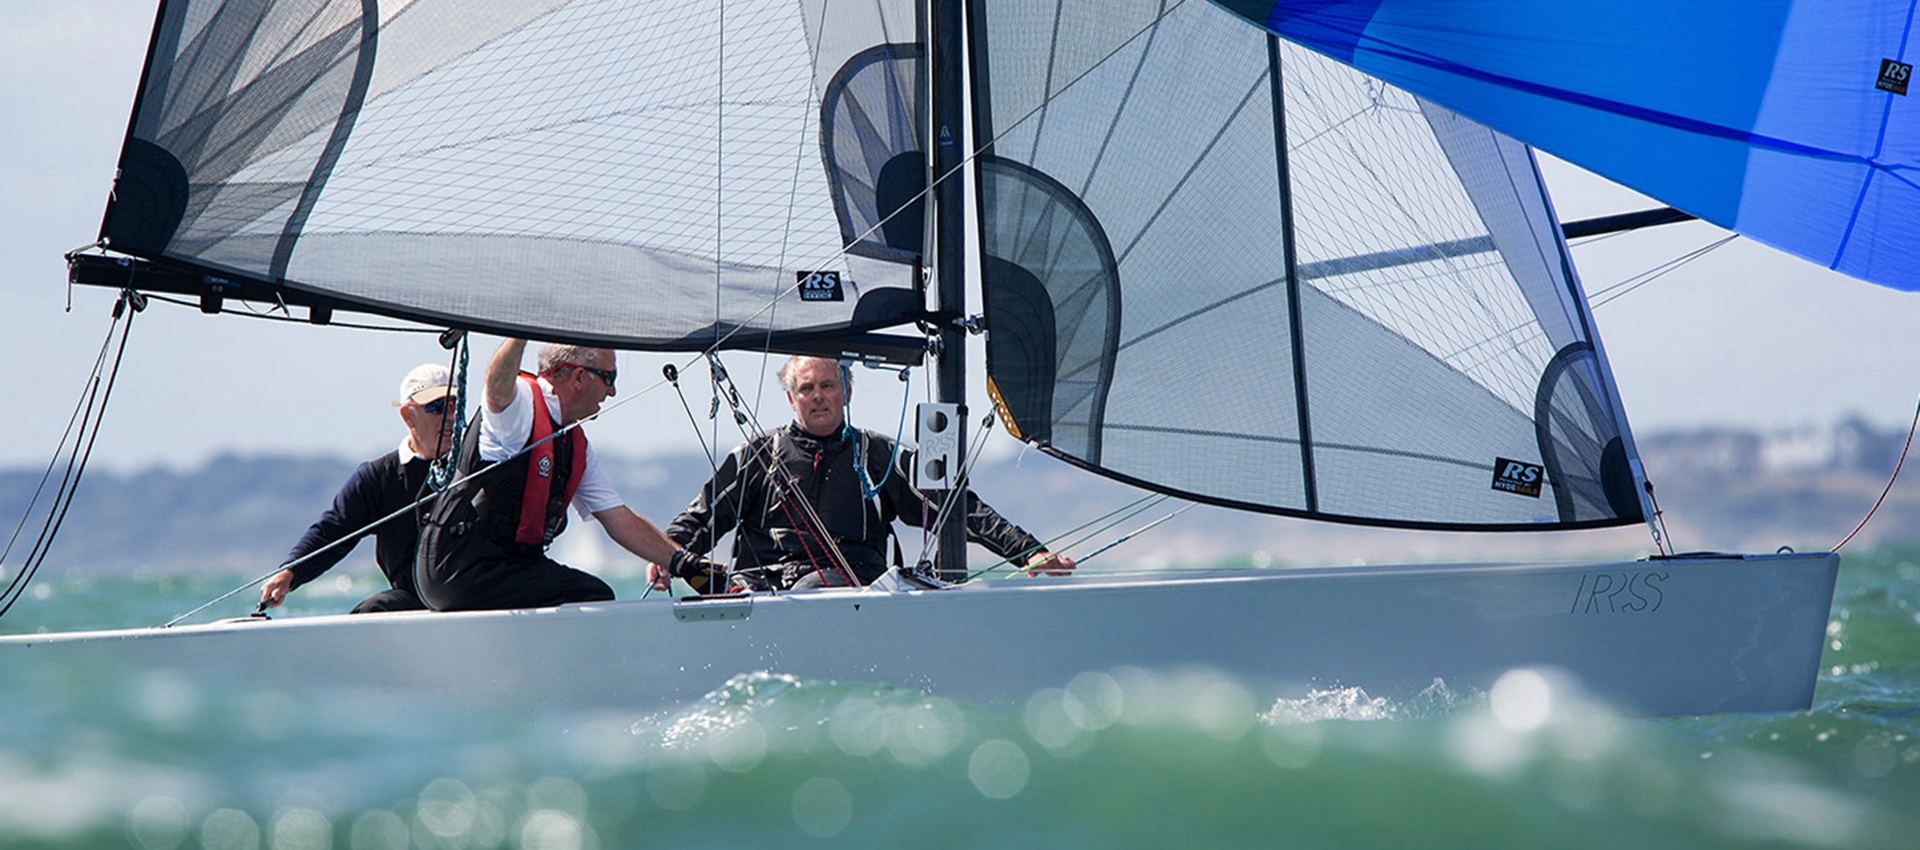 RS Elite sailing downwind